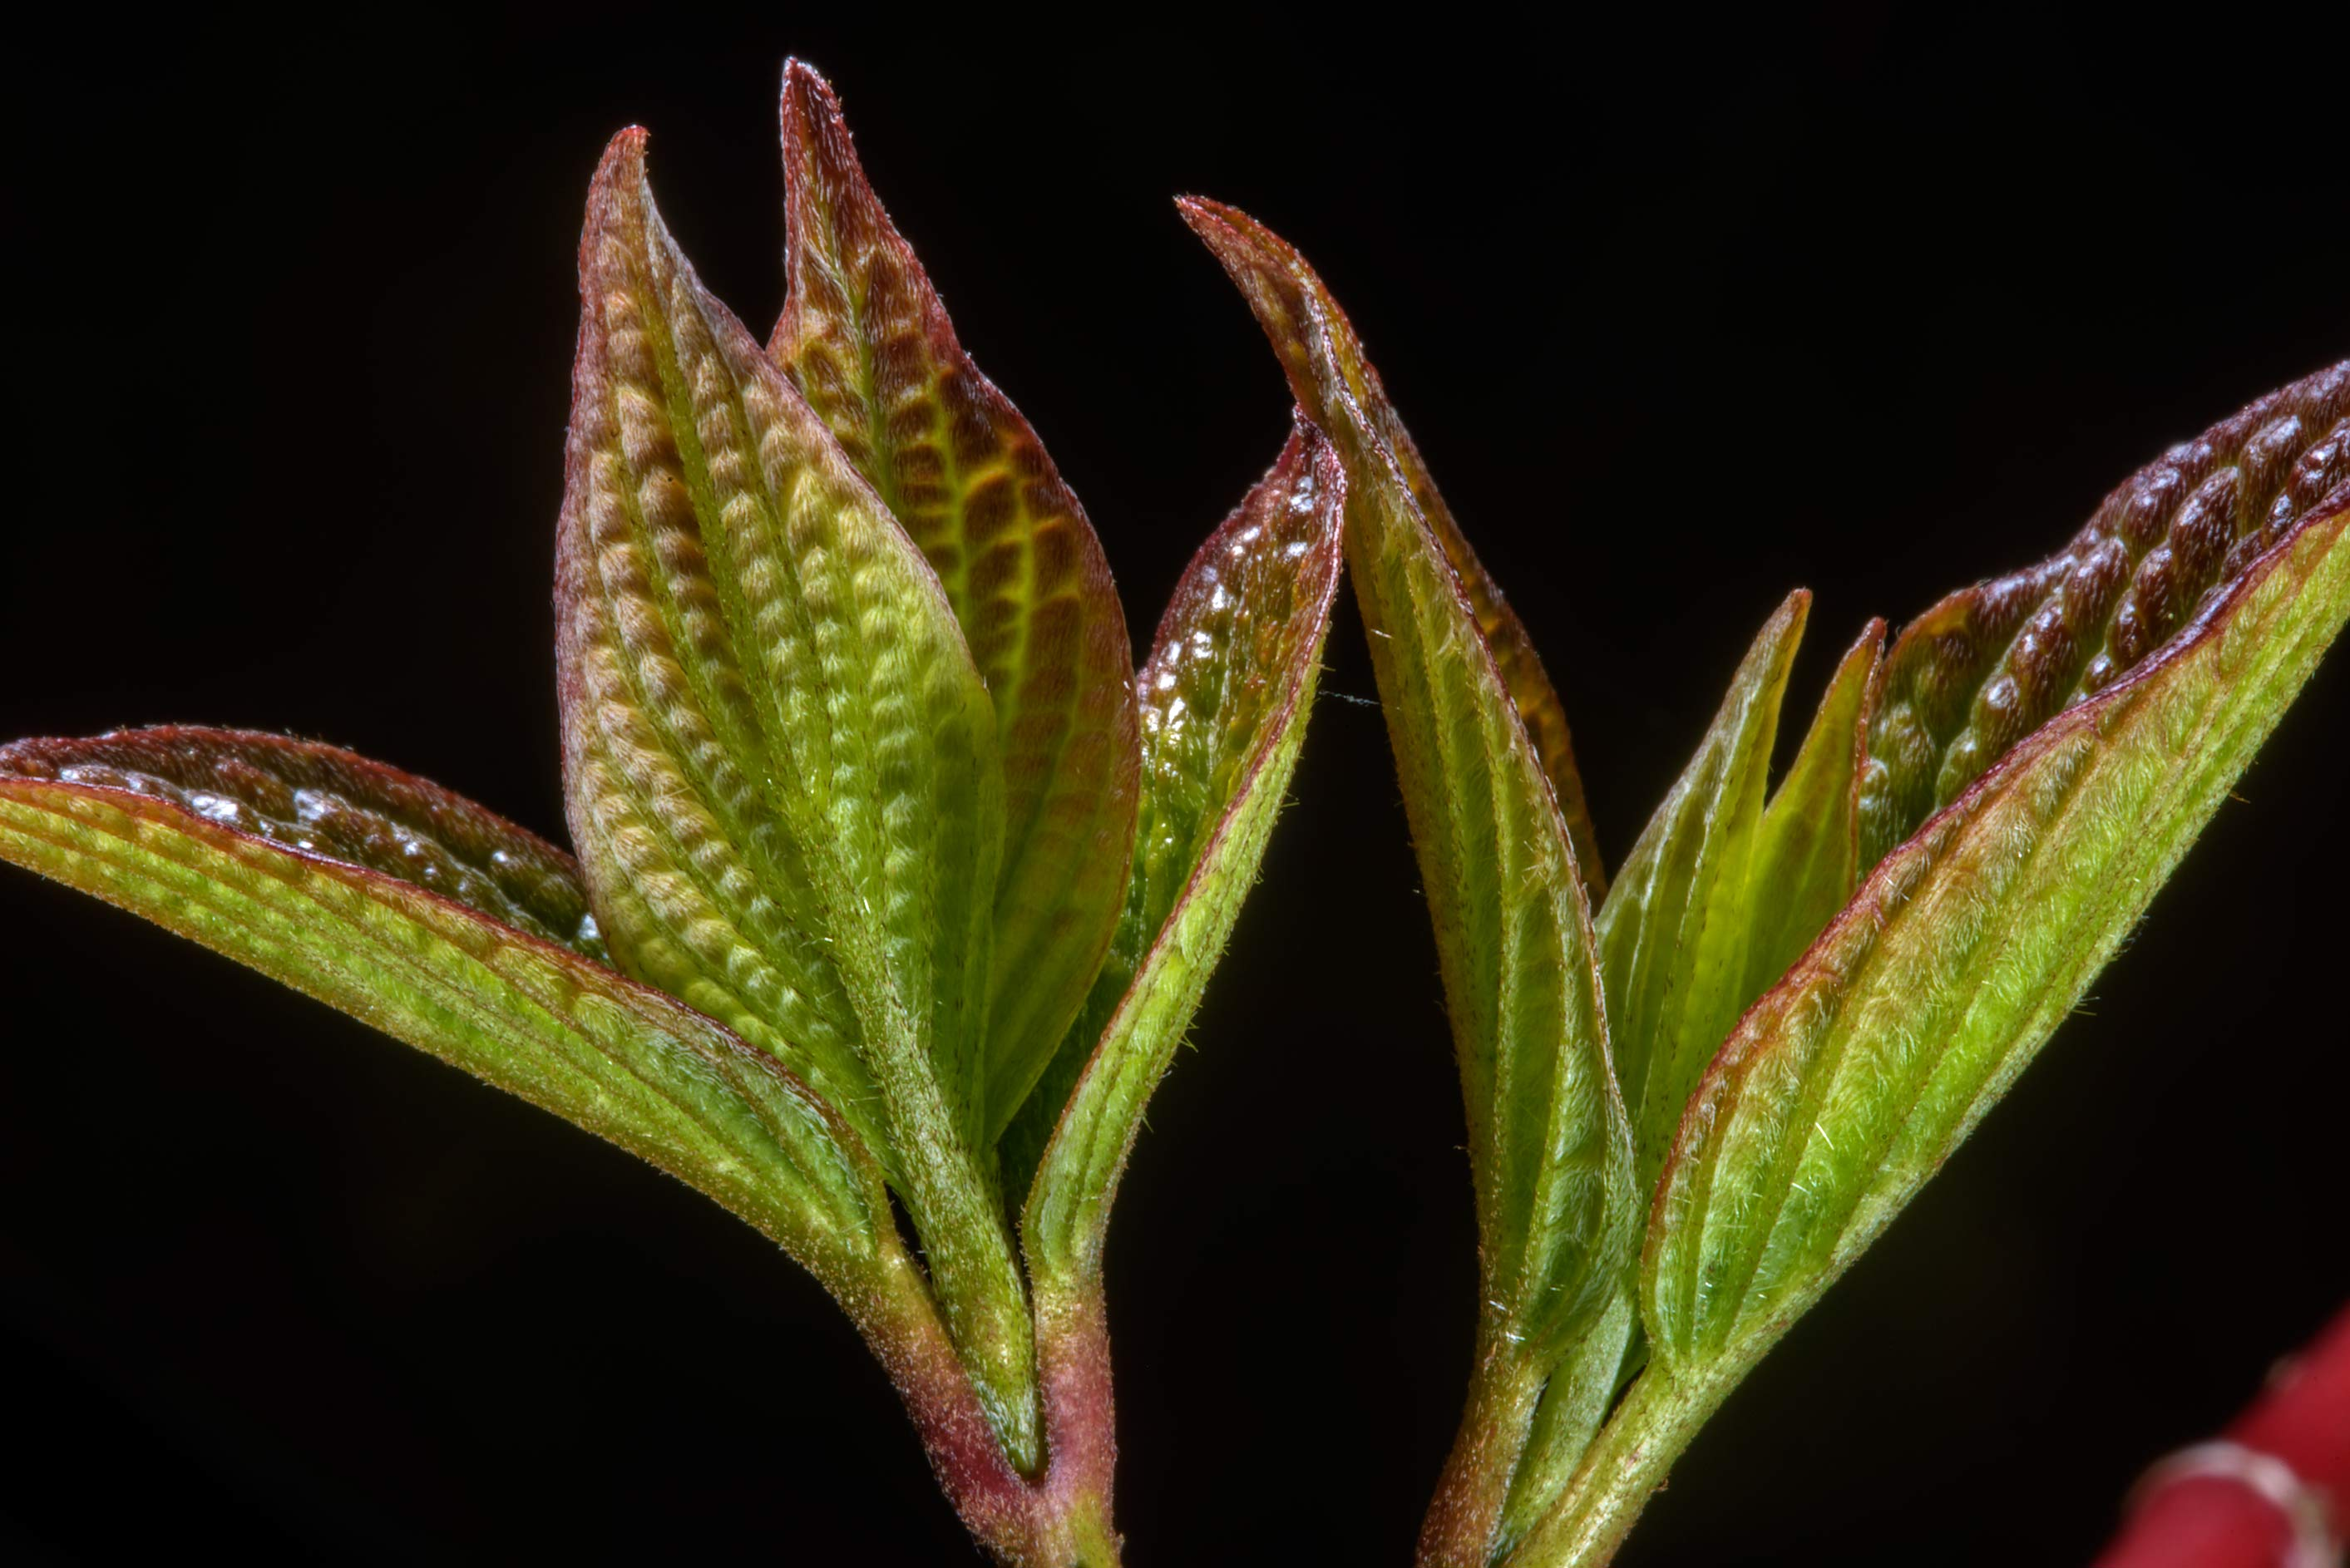 Young leaves of red-barked dogwood (Cornus alba...West from St.Petersburg, Russia